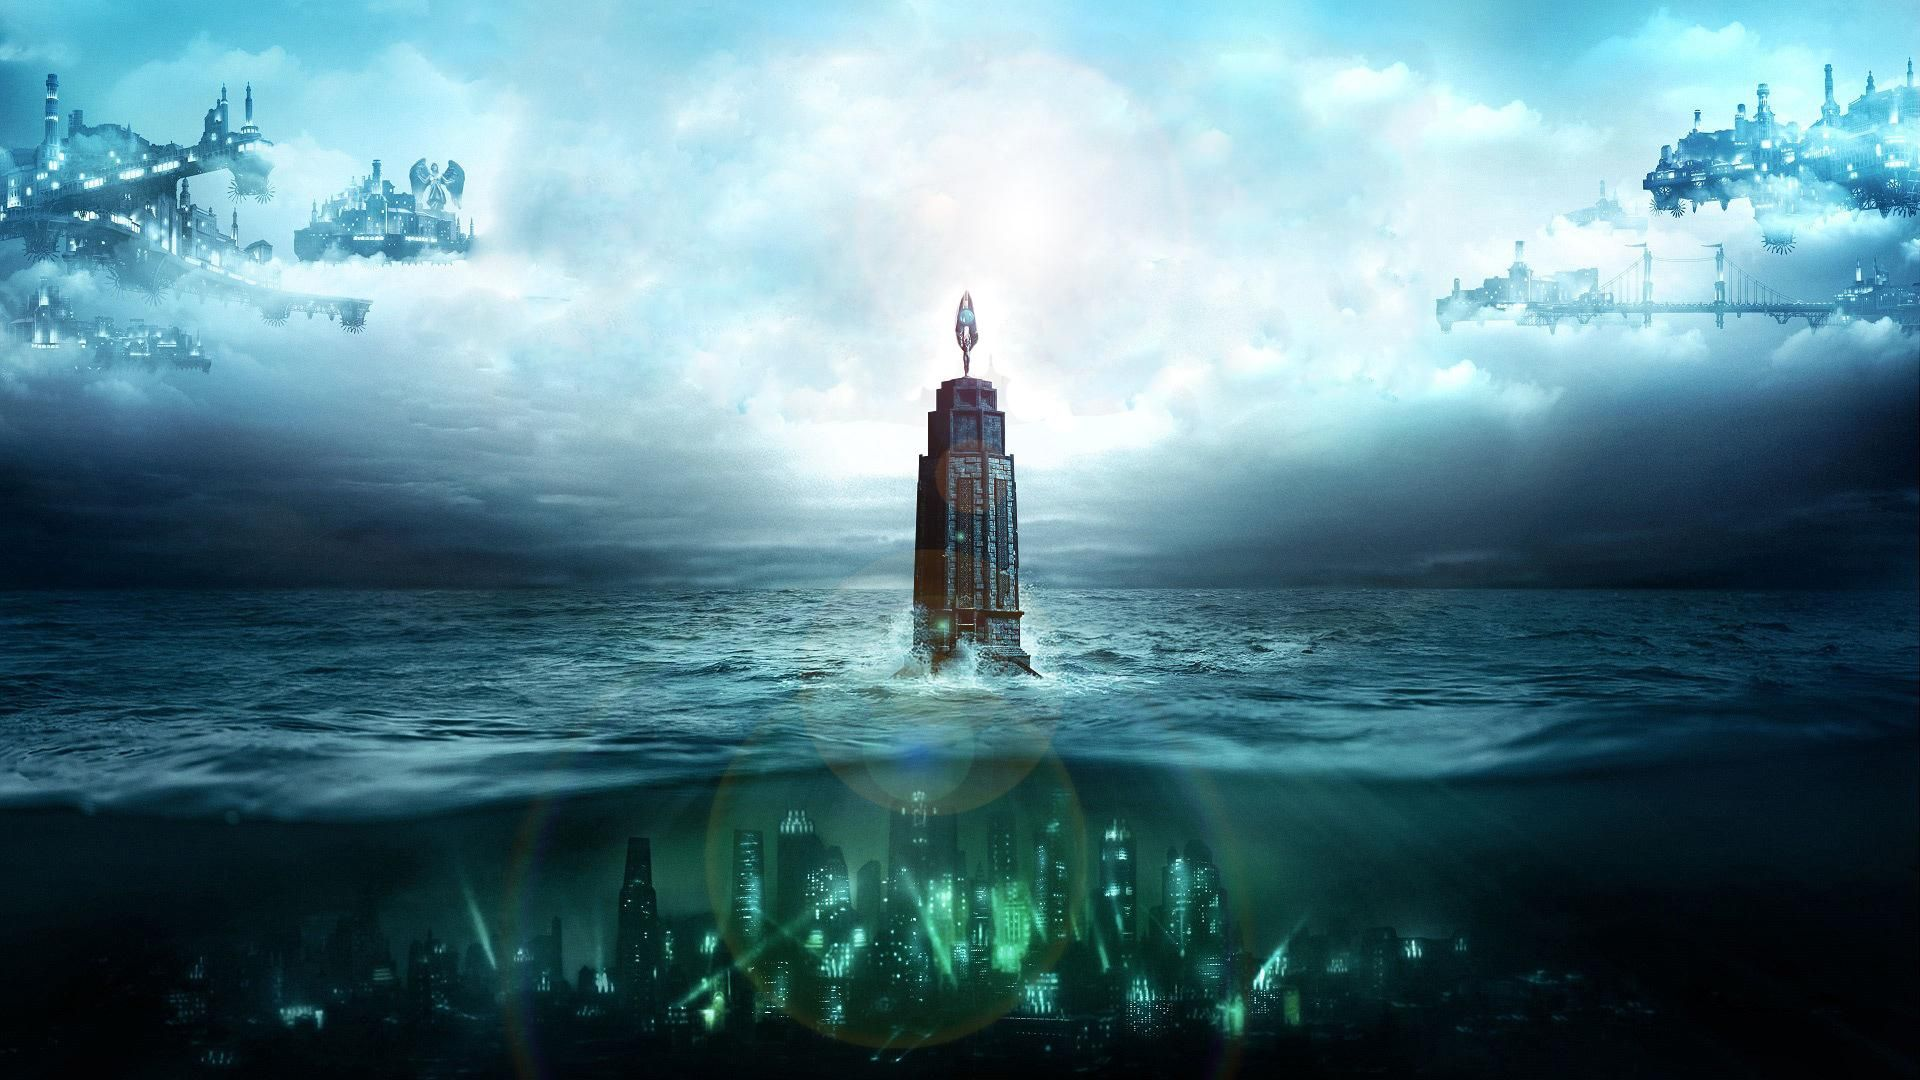 There S Always A Lighthouse There S Always A City 1920x1080 R Wallpapers Bioshock Bioshock Collection Bioshock Rapture